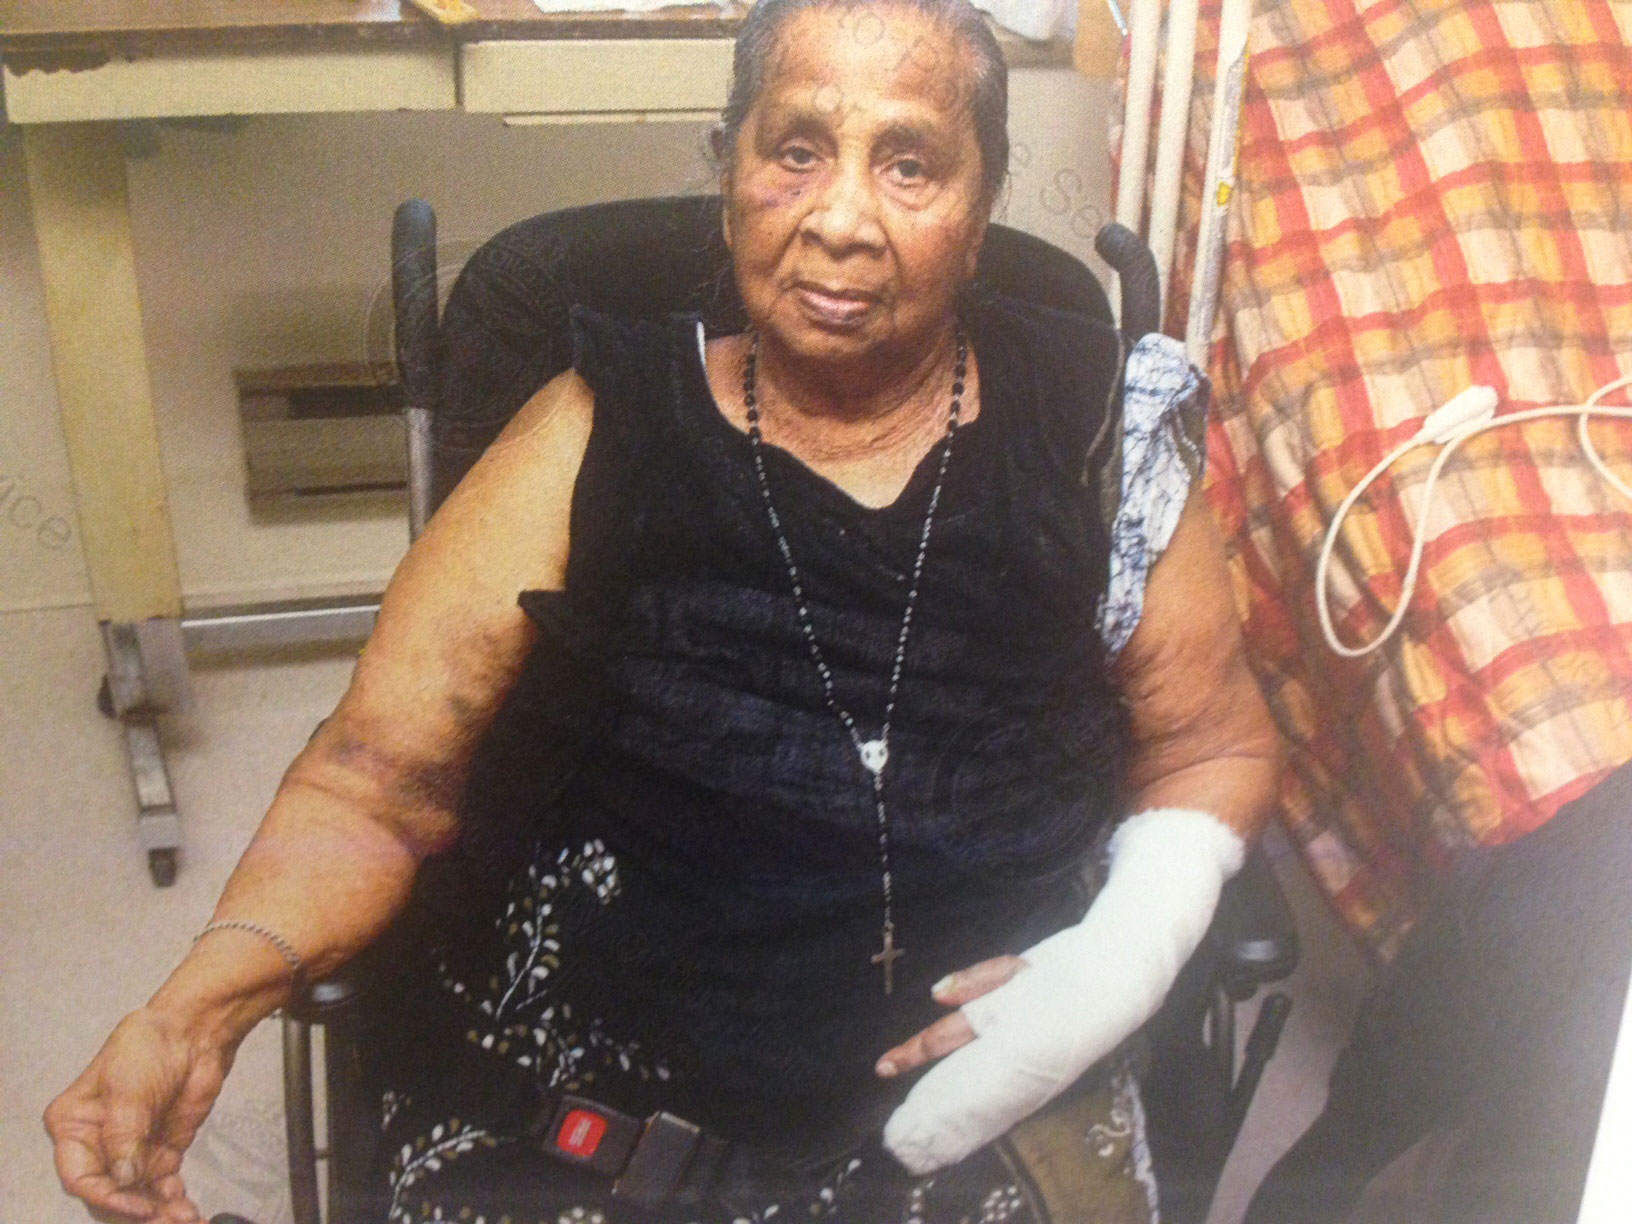 Lourdes Missier, 91, was allegedly attacked by a fellow resident at Wexford Residence in Toronto on March 13, 2013 (court documents).